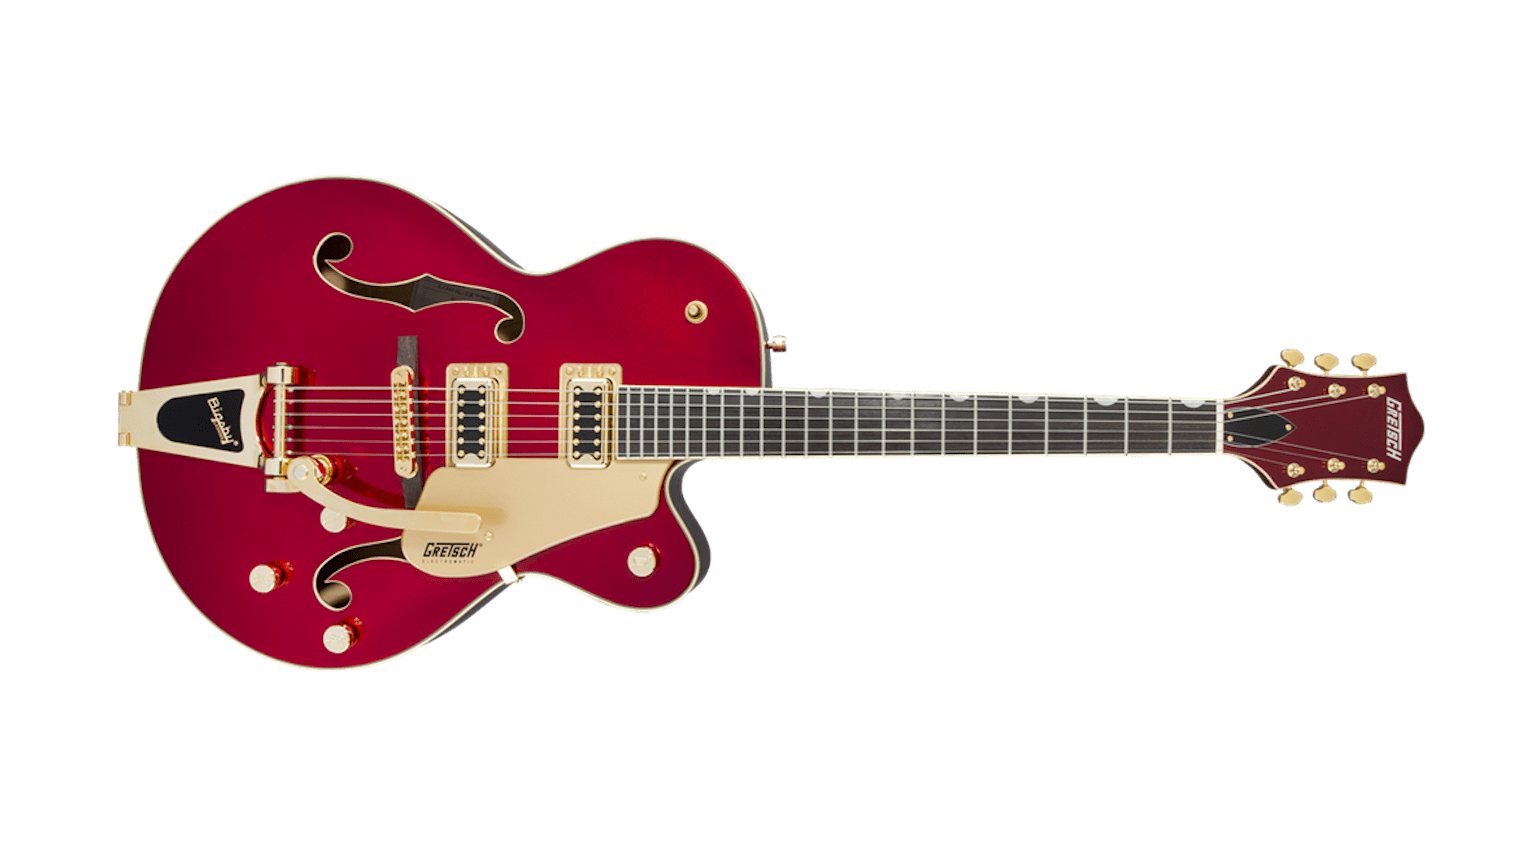 Gretsch G5420TG Limited Edition Electromatic Single-Cut Hollow Body